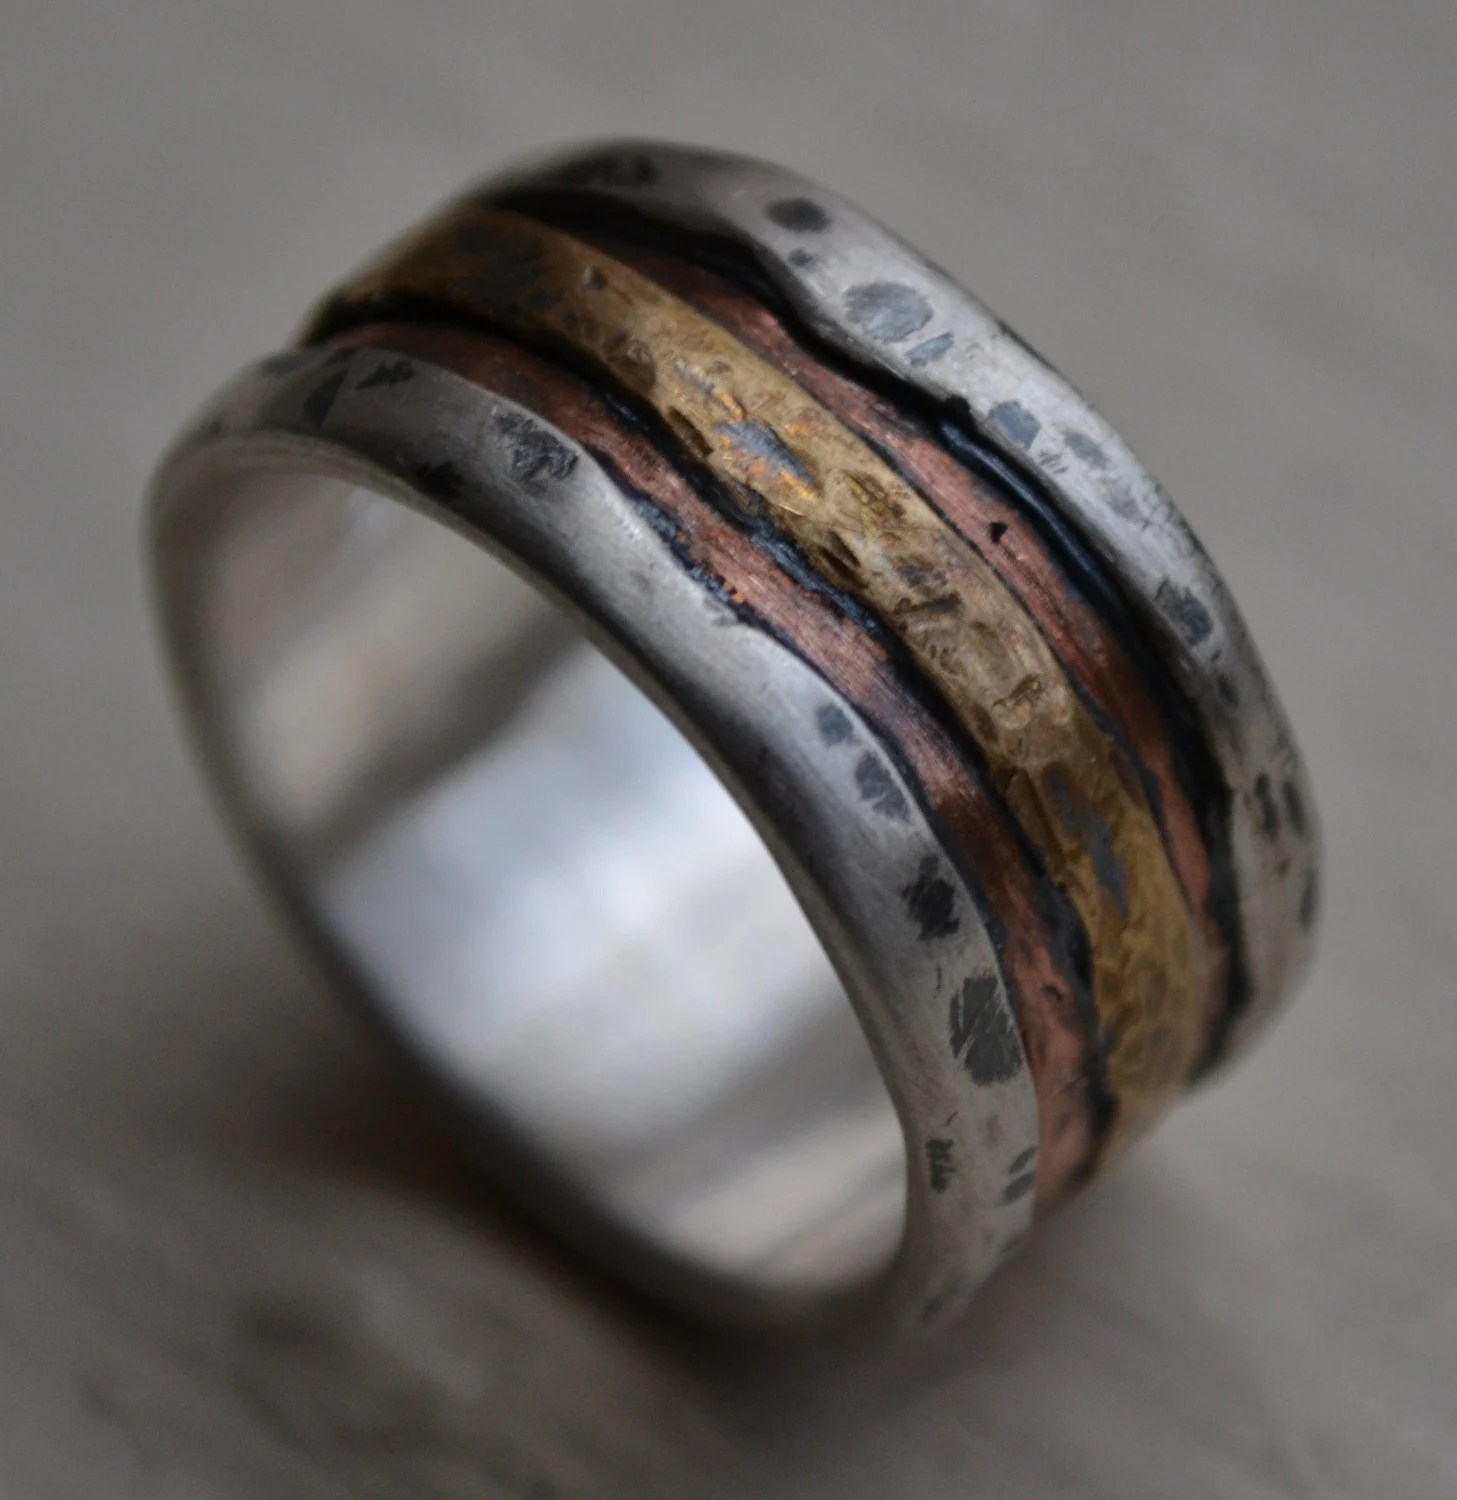 my ideas for our wedding wood wedding rings 27 best images about My ideas for our wedding on Pinterest Copper Titanium rings and Casual groom attire